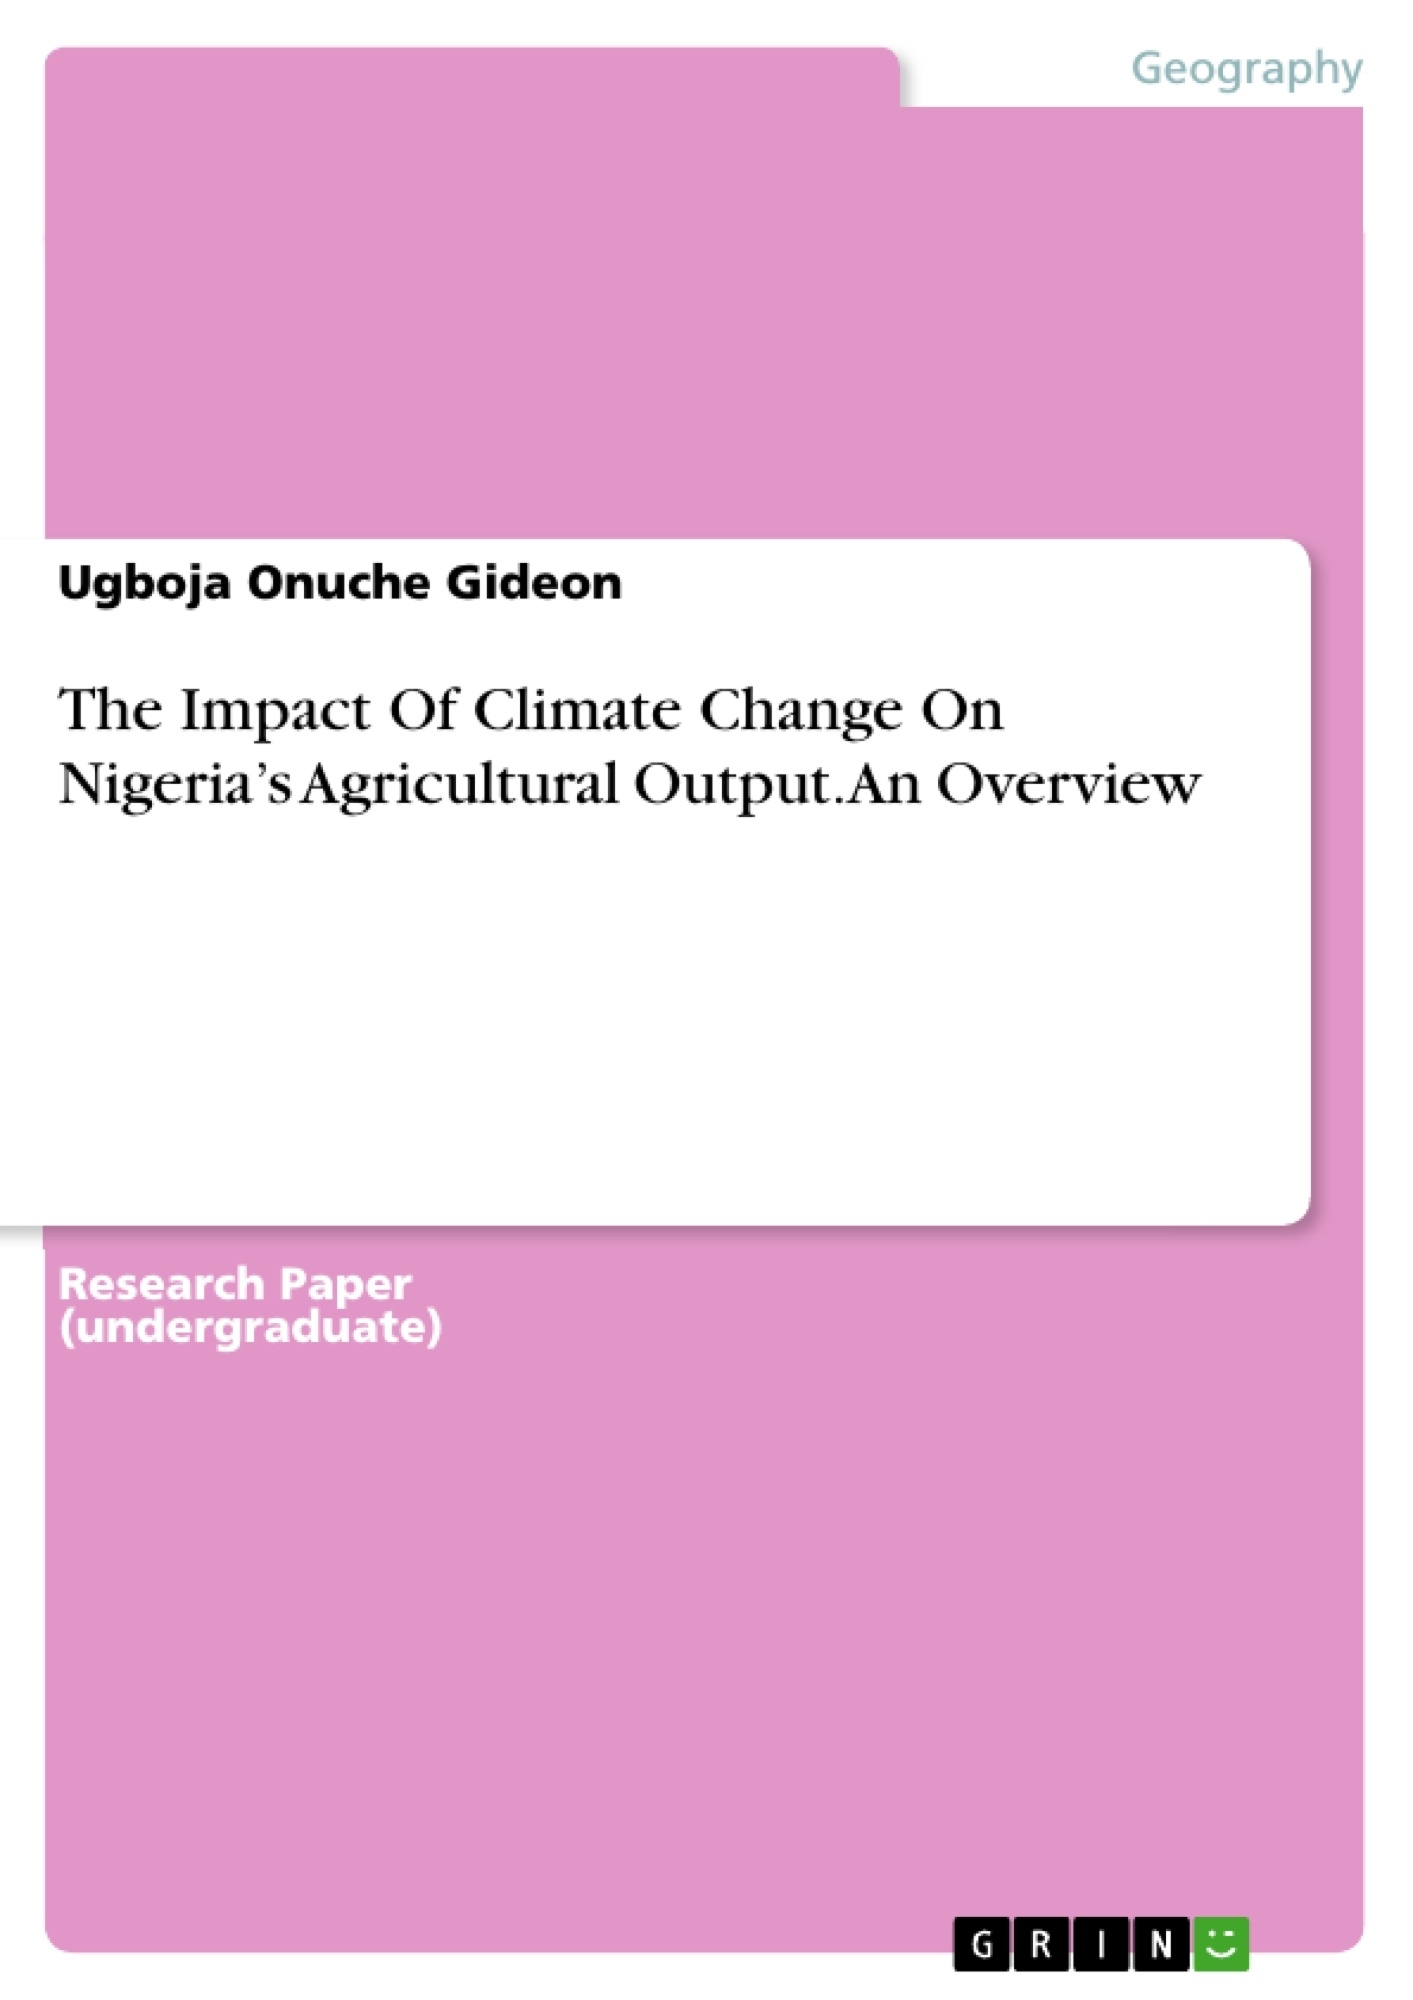 Title: The Impact Of Climate Change On Nigeria's Agricultural Output. An Overview